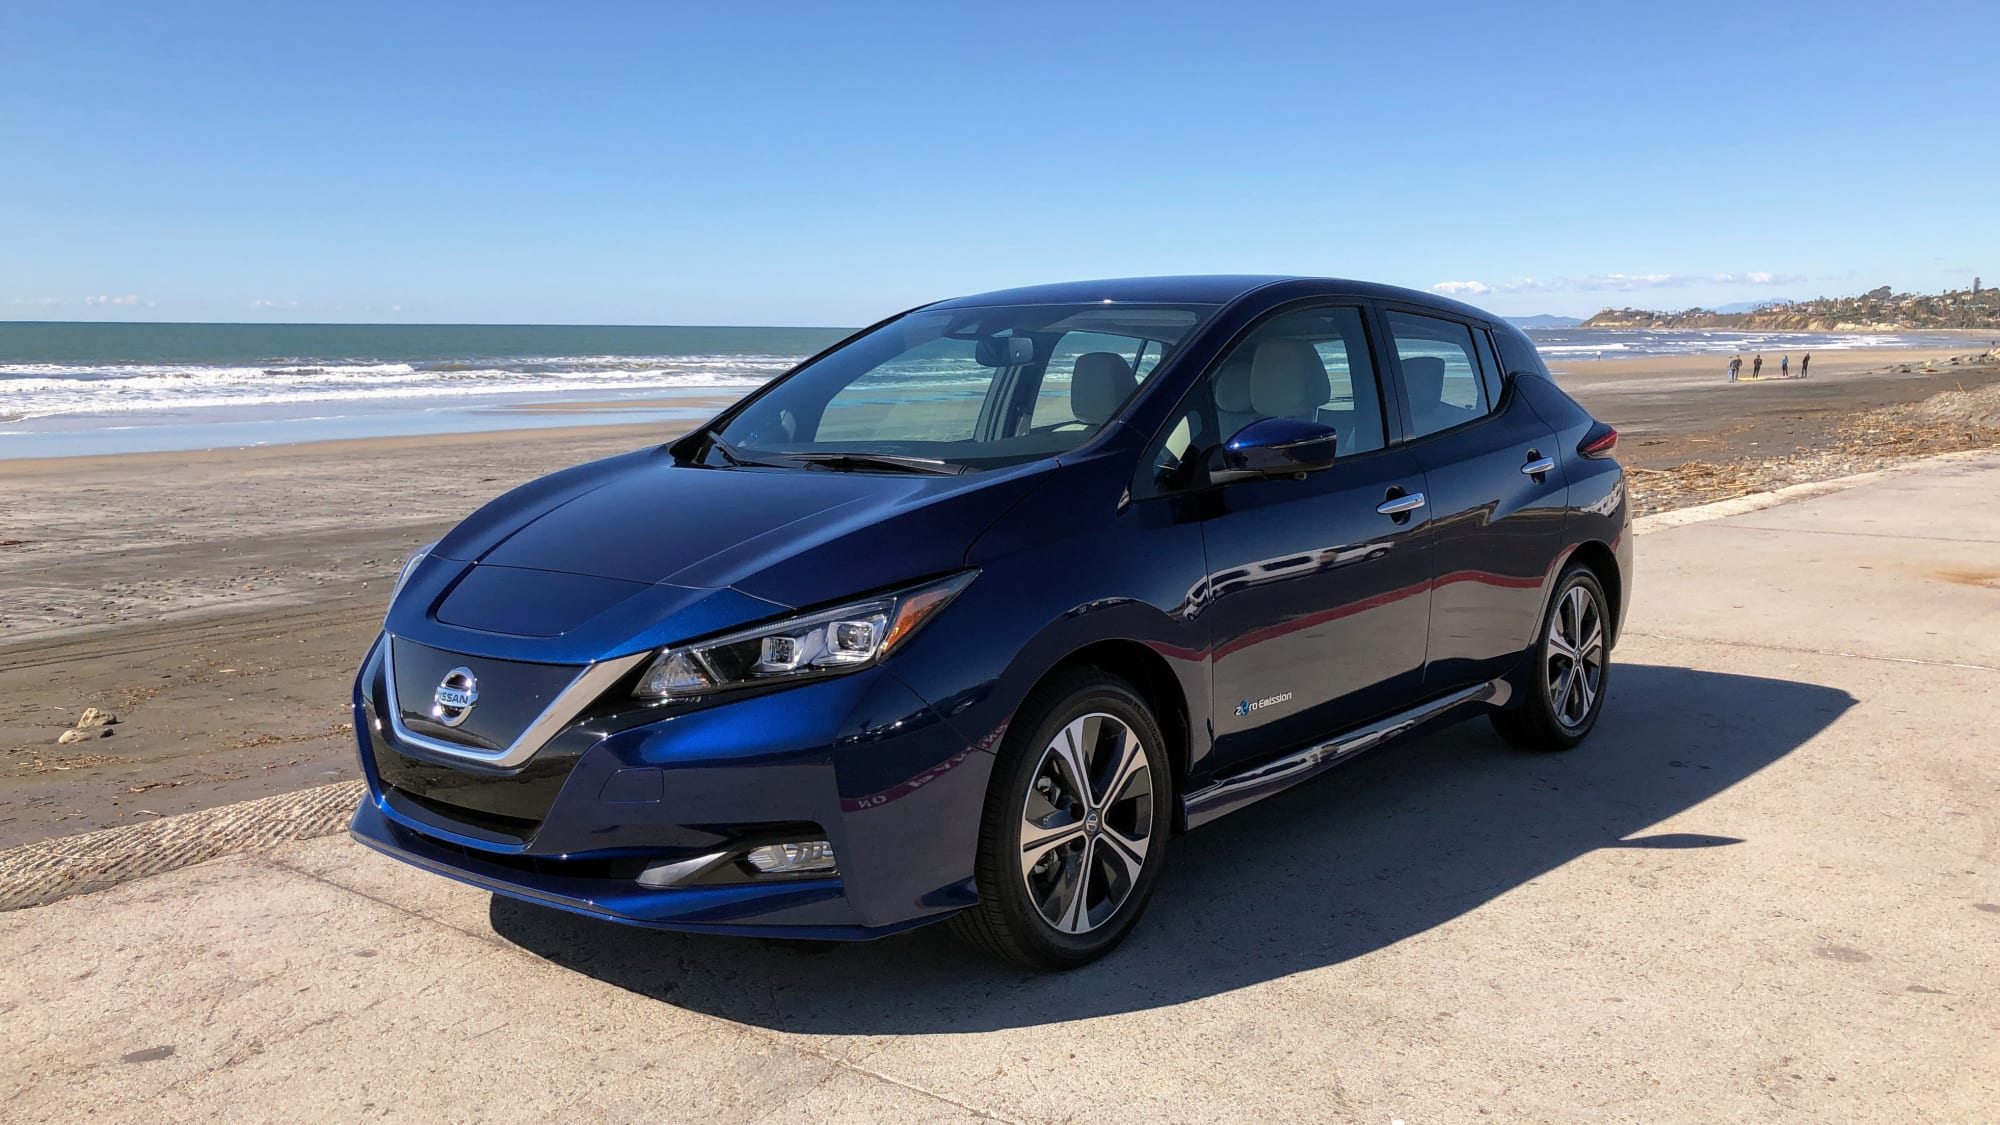 2019 Nissan Leaf Reviews Price Electric Range Features And